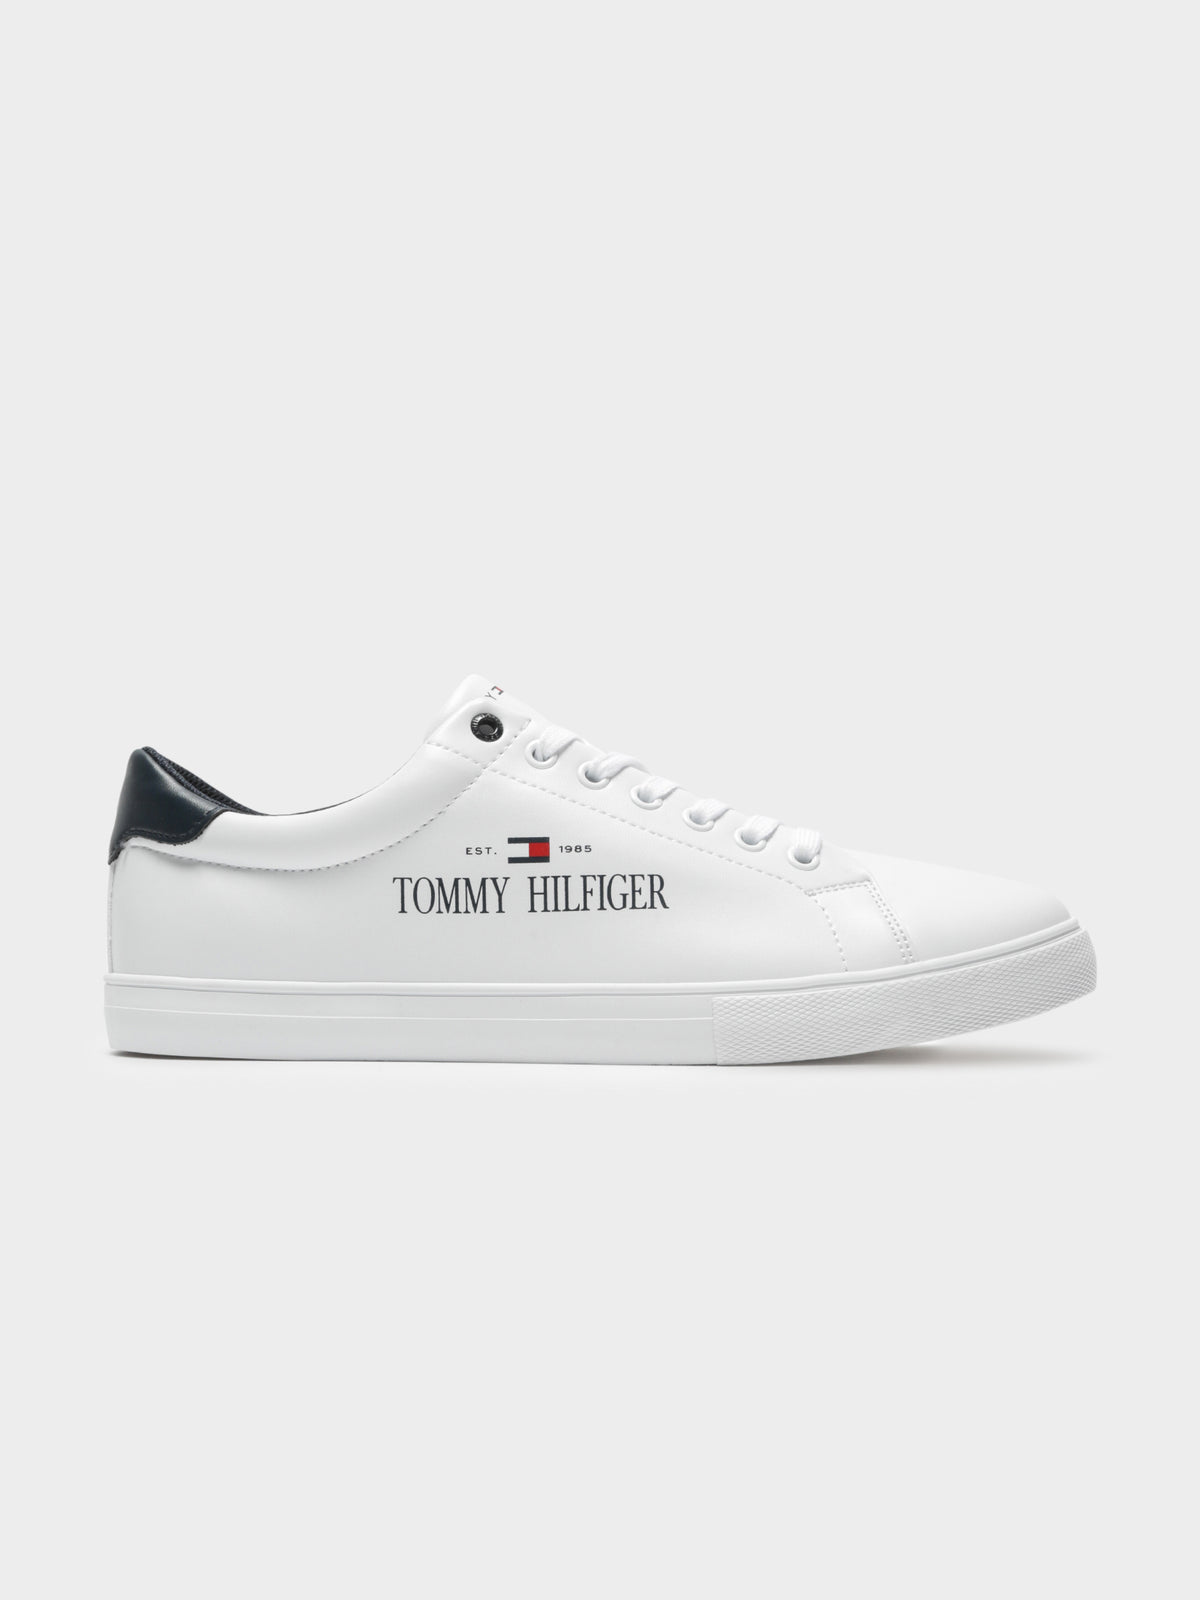 Corporate Sneakers in White